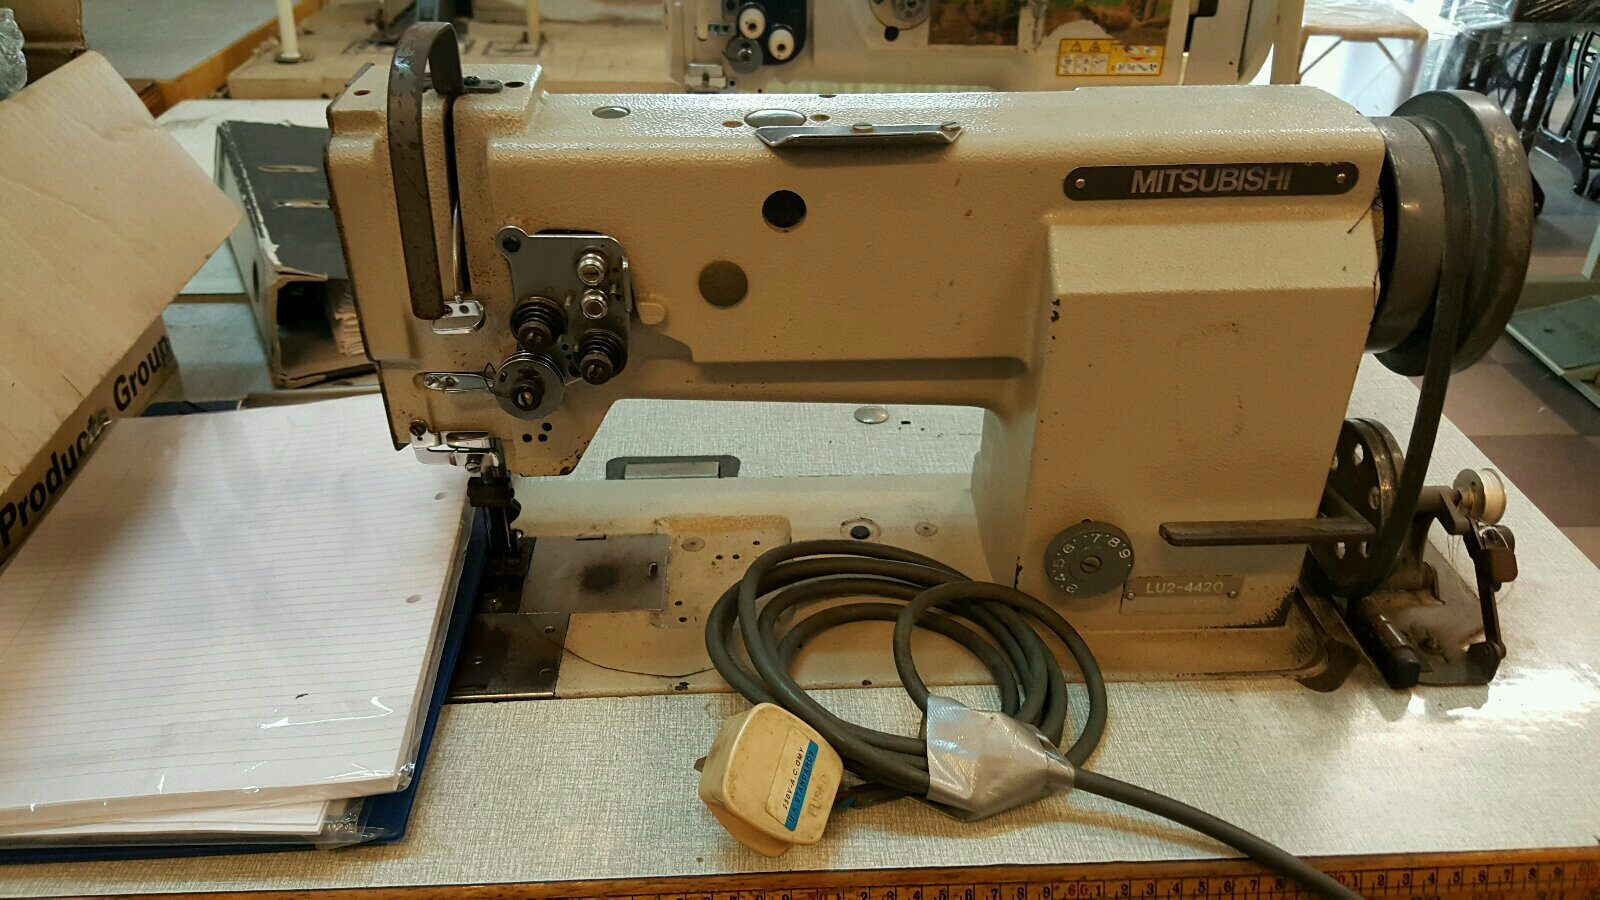 Repai Mitsubishi Sewing Machine